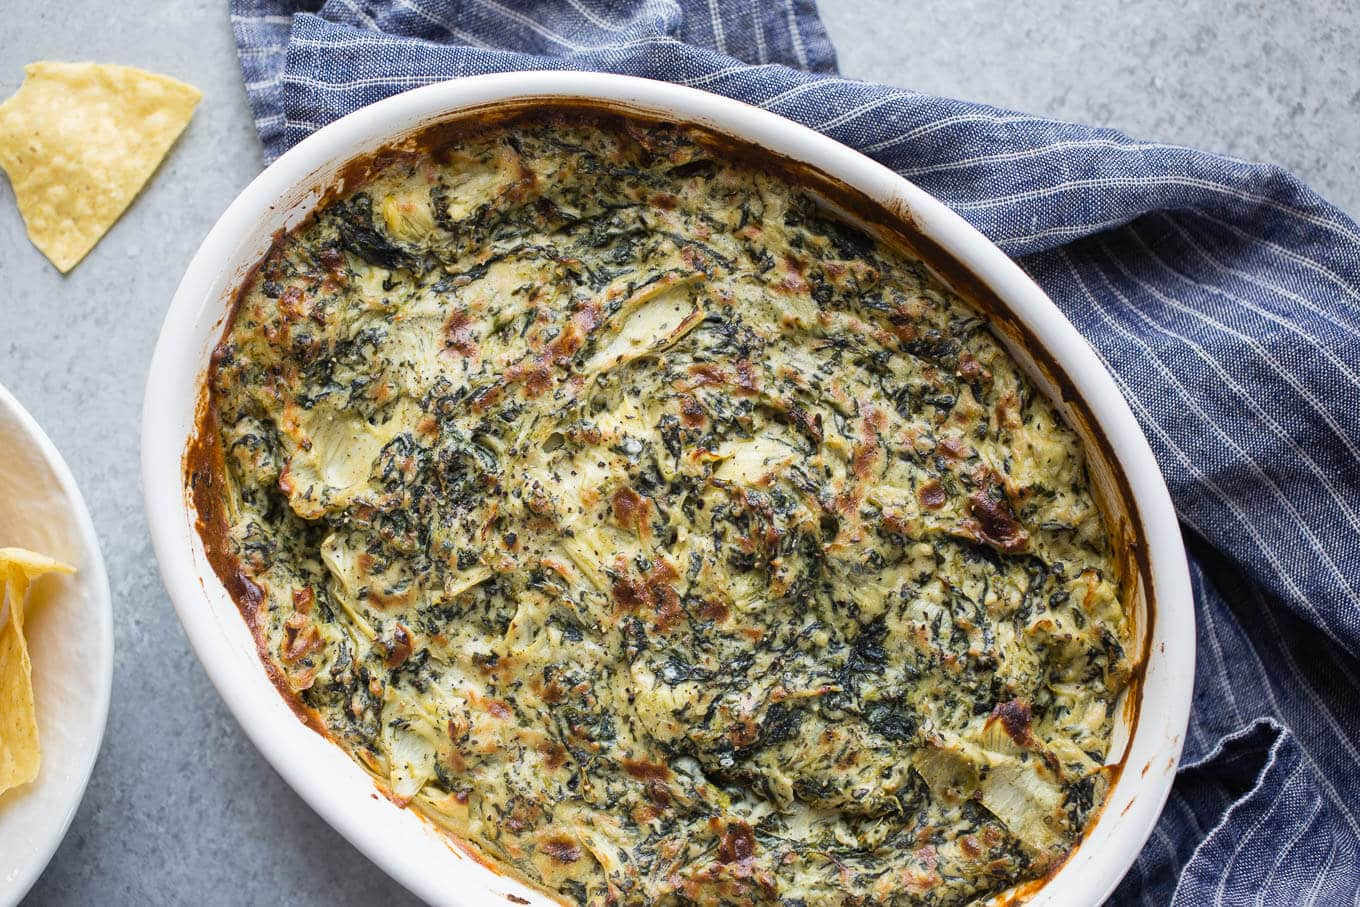 Baked Vegan Spinach Artichoke Dip is made dairy-free with a cashew cream base. An easy appetizer dip recipe for a crowd.